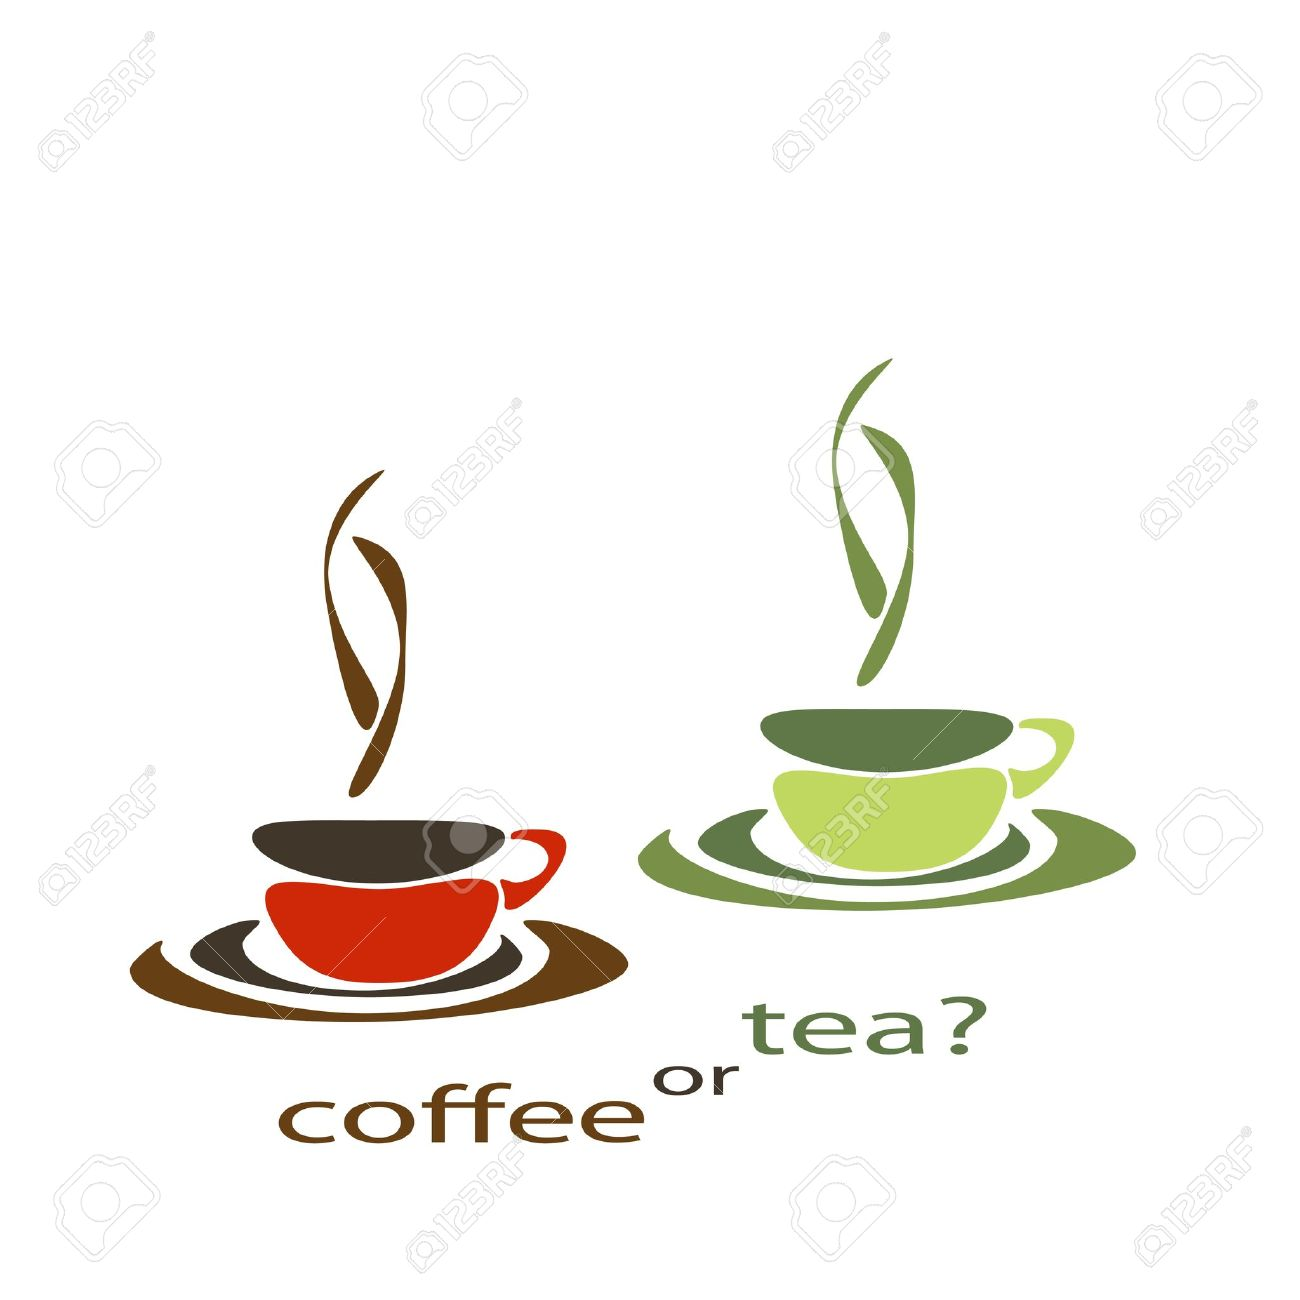 Clip Art Coffee Table: Tea And Coffee Pictures